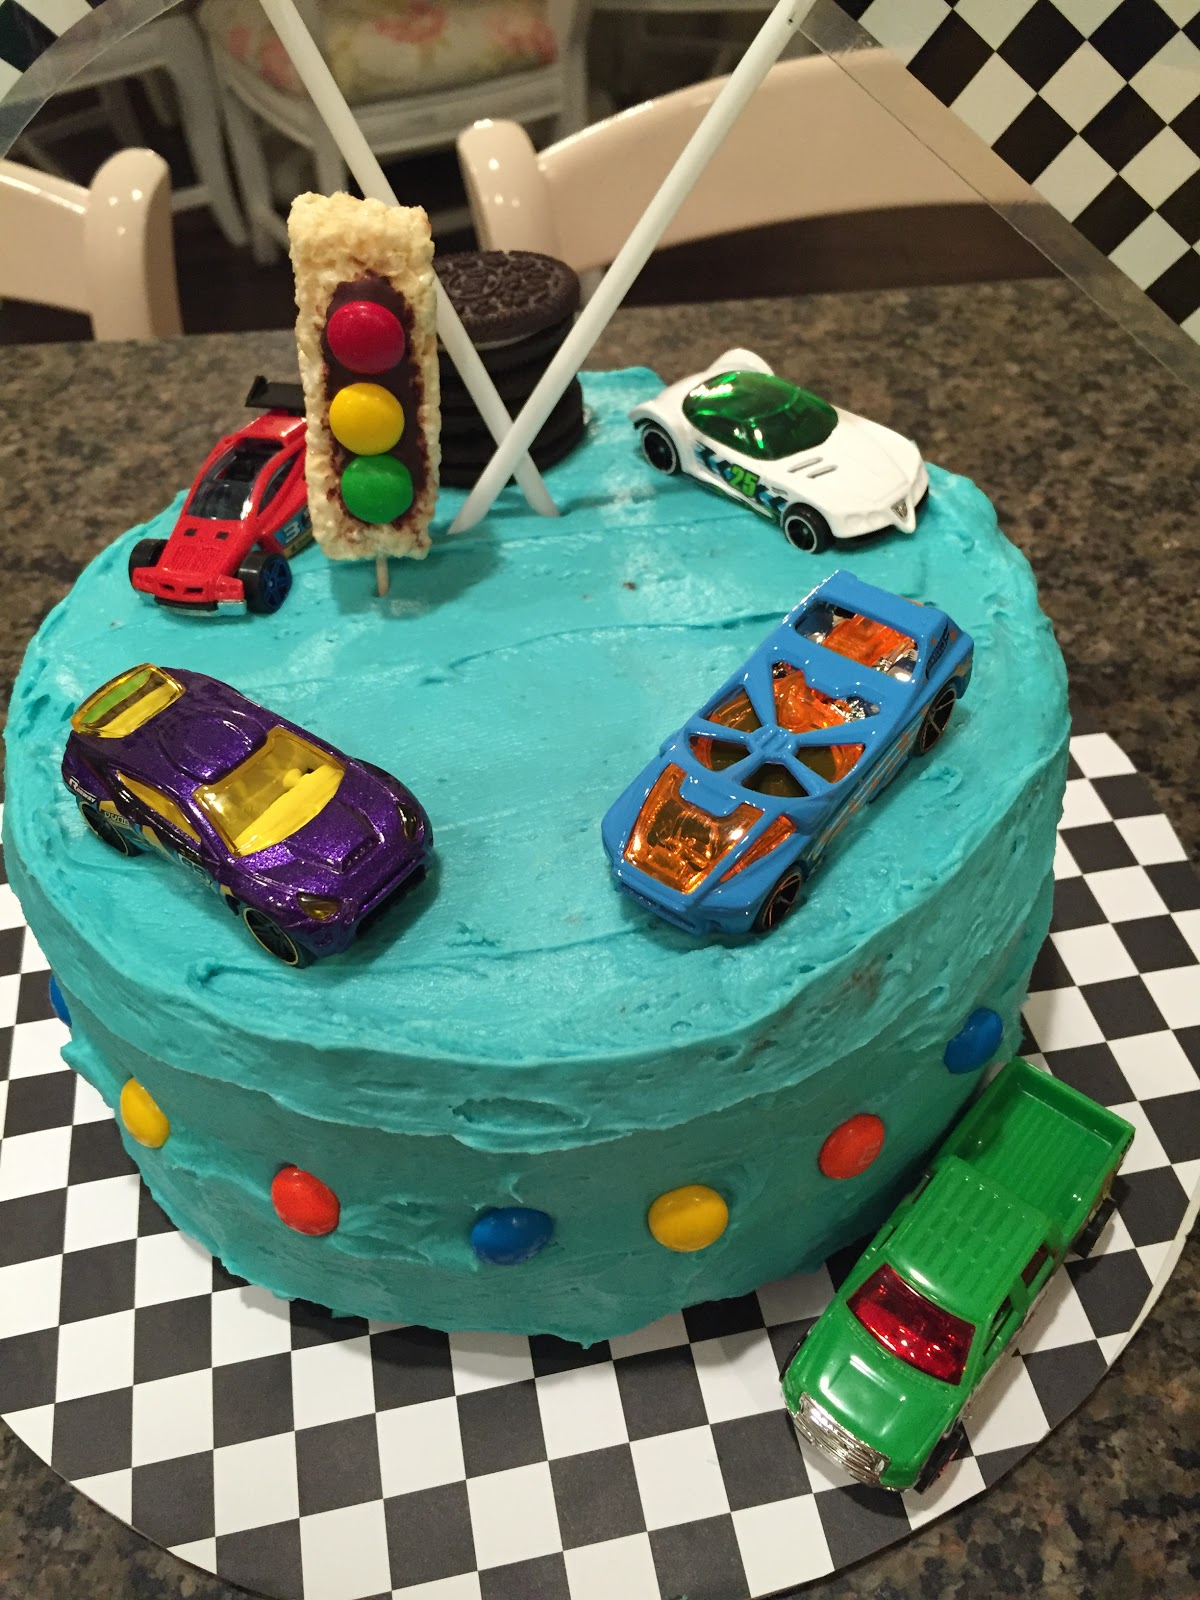 Hot wheels race track cake, The Style Sisters, Hot Wheels car cake